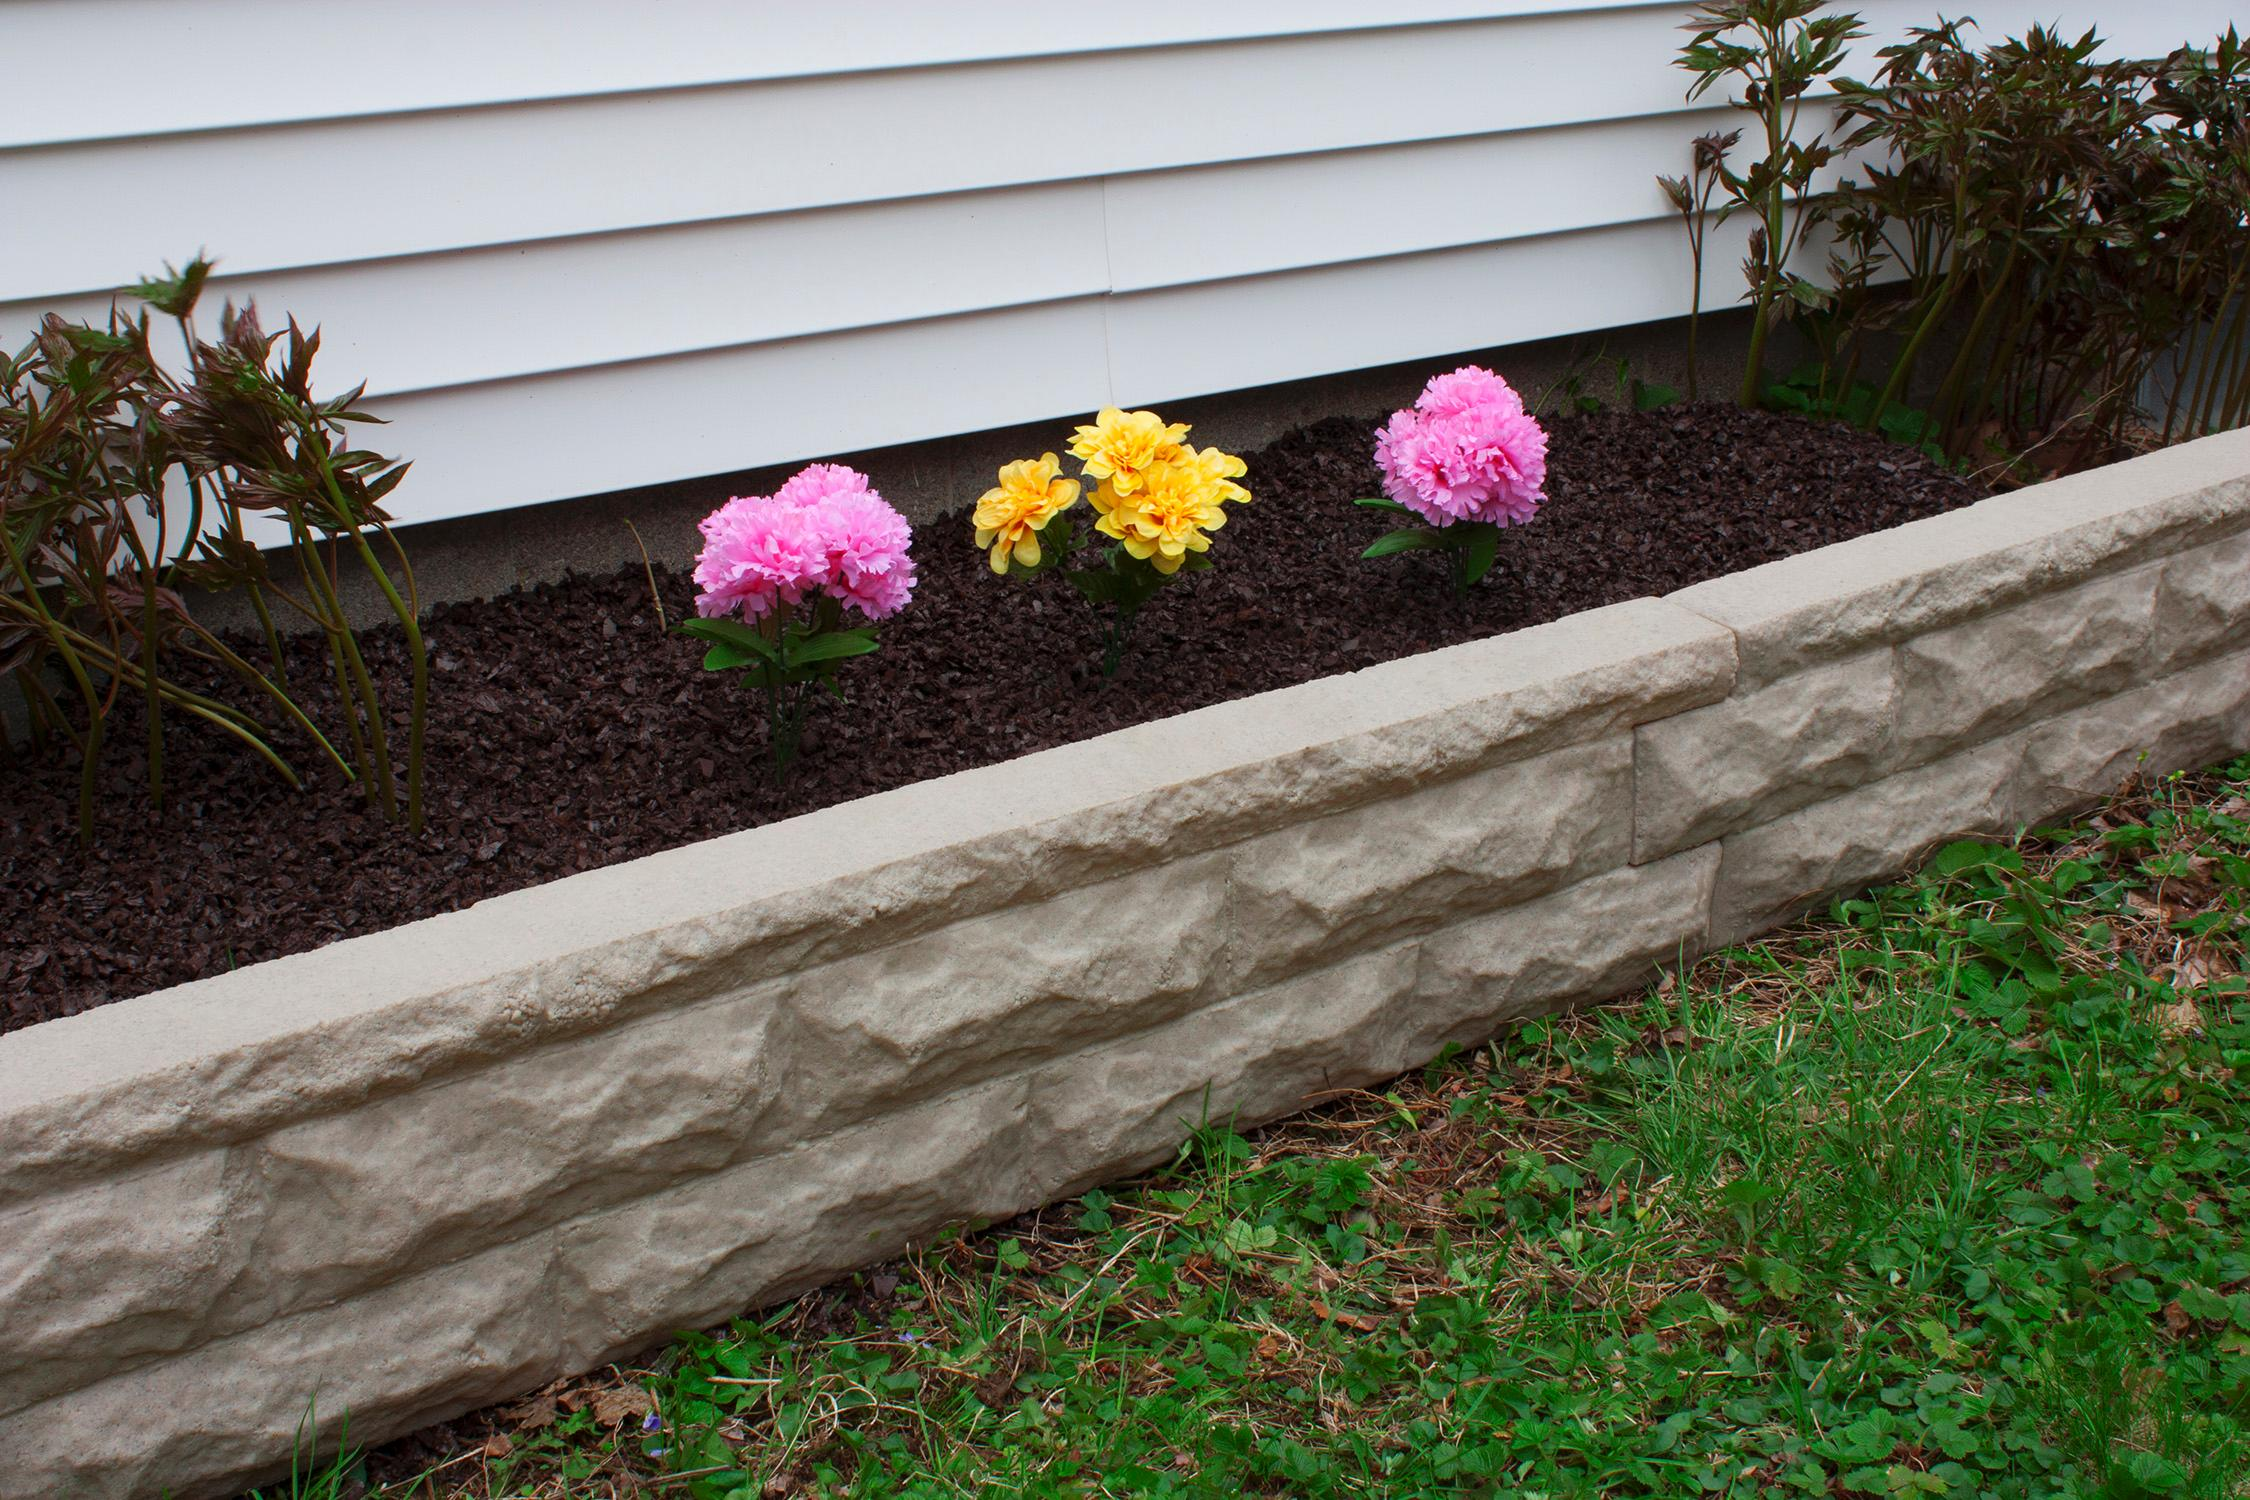 Stone Border Edging Landscape Wall Brick Decorative